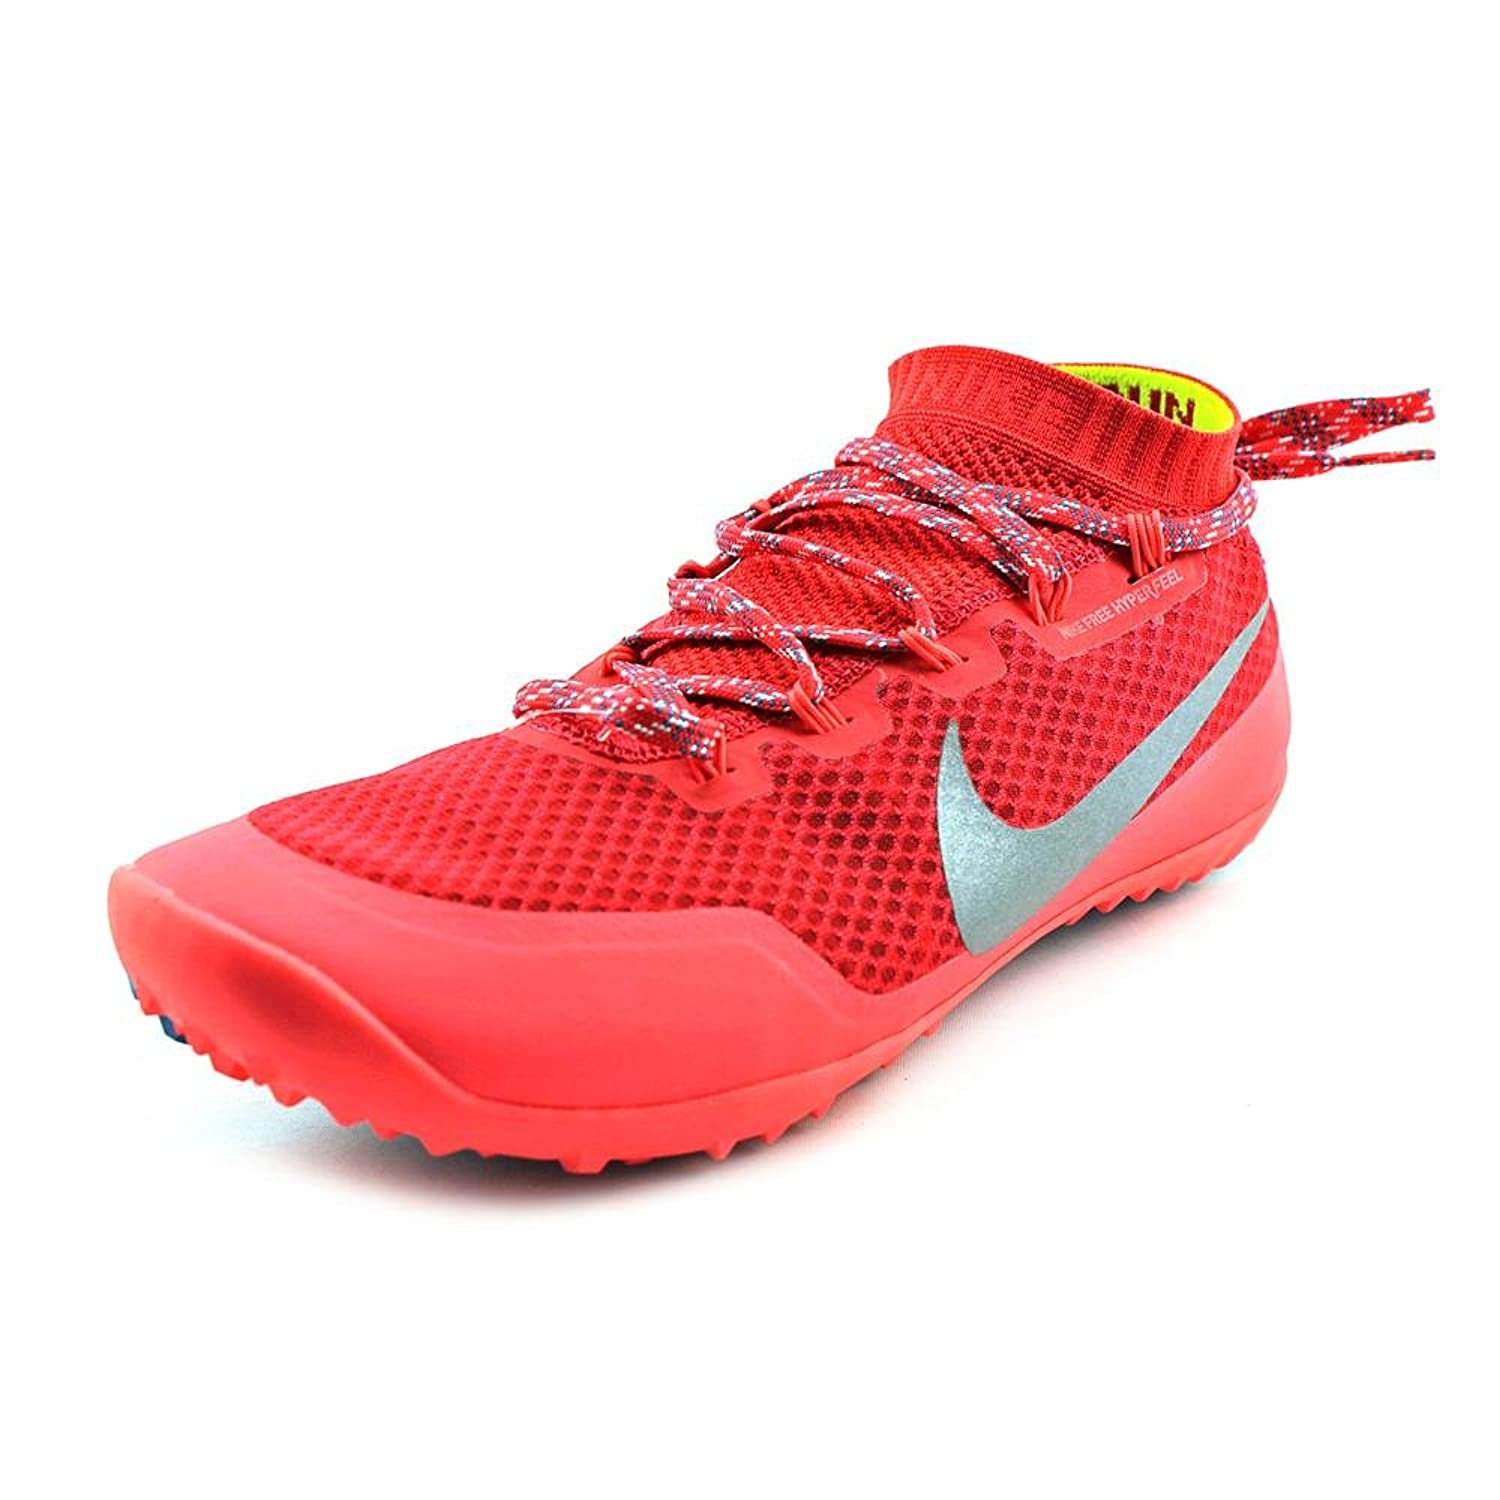 new arrival 0fff8 b4348 Nike Free Hyperfeel Run Trail Womens running shoes Model 616254 603